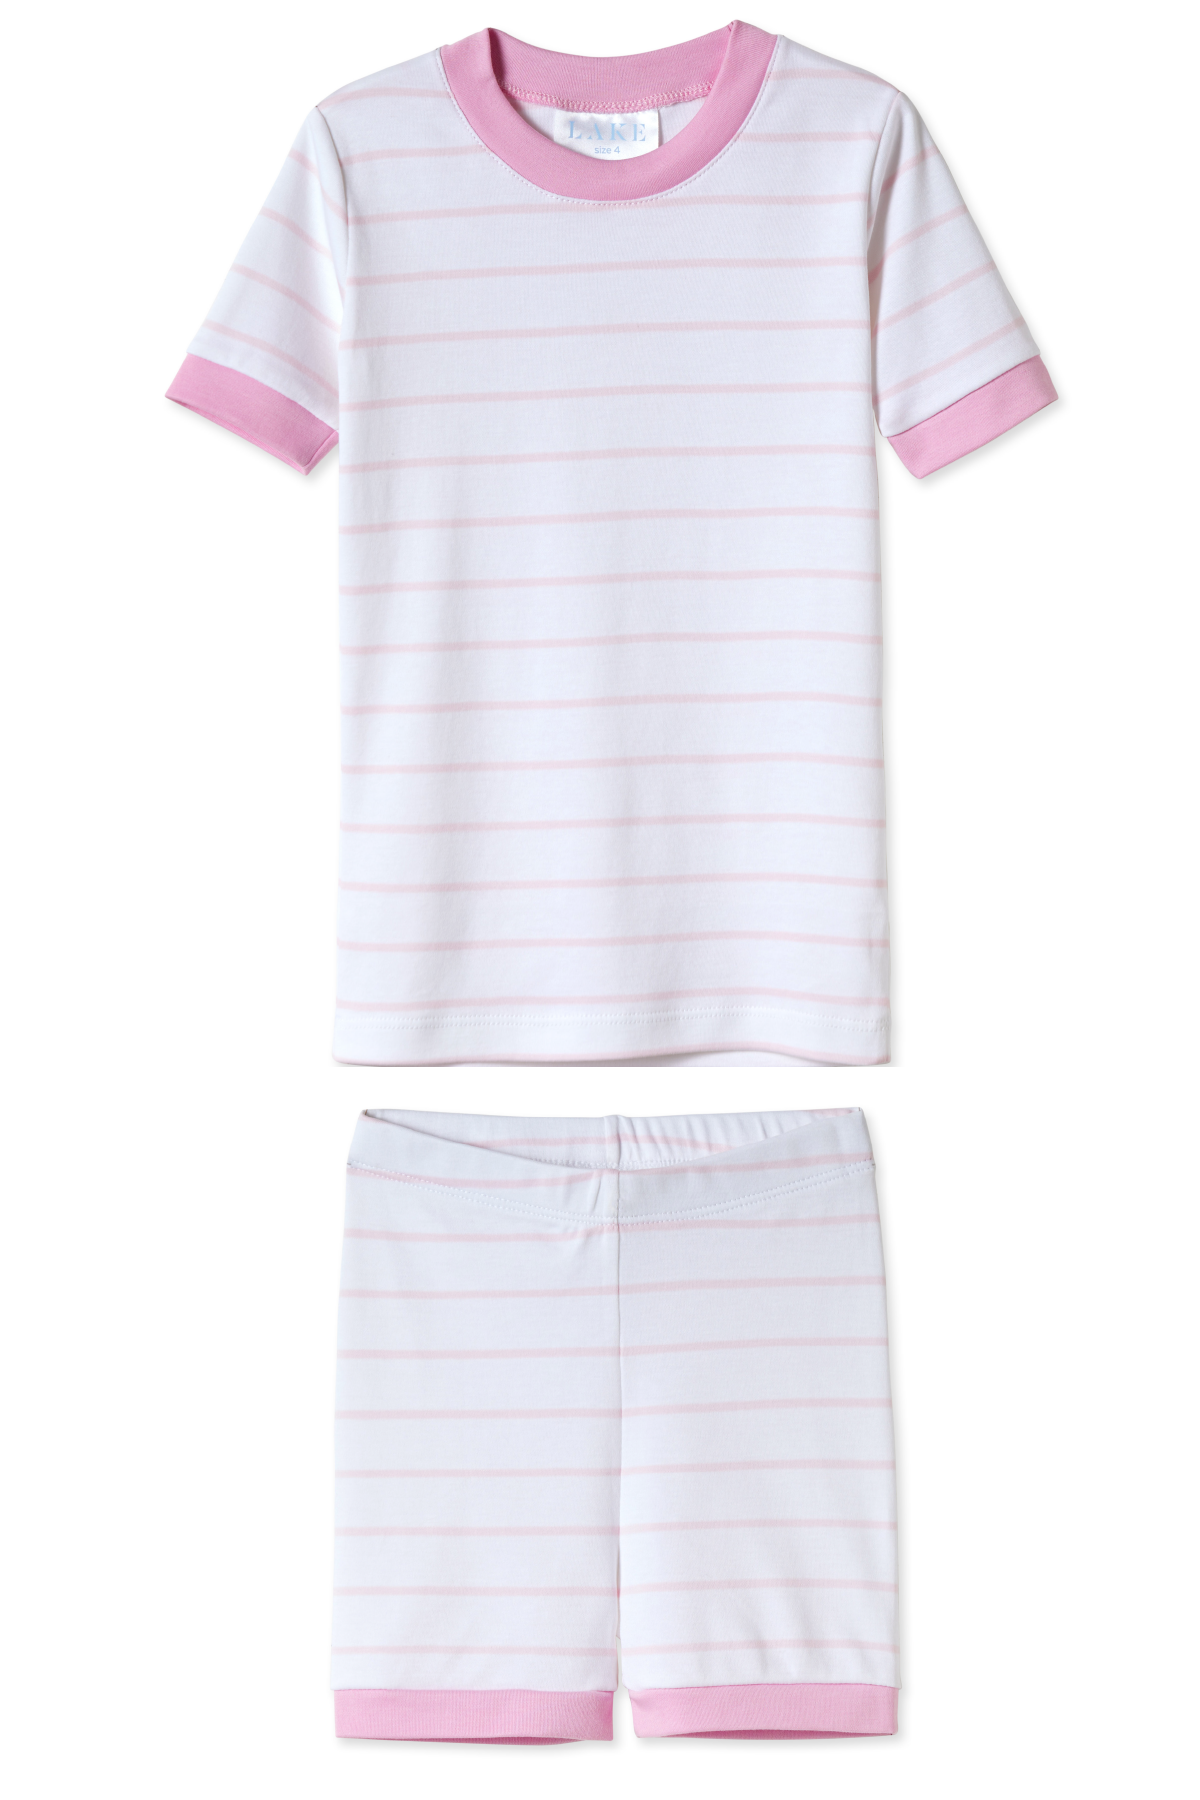 Kids Shorts Set in Peony